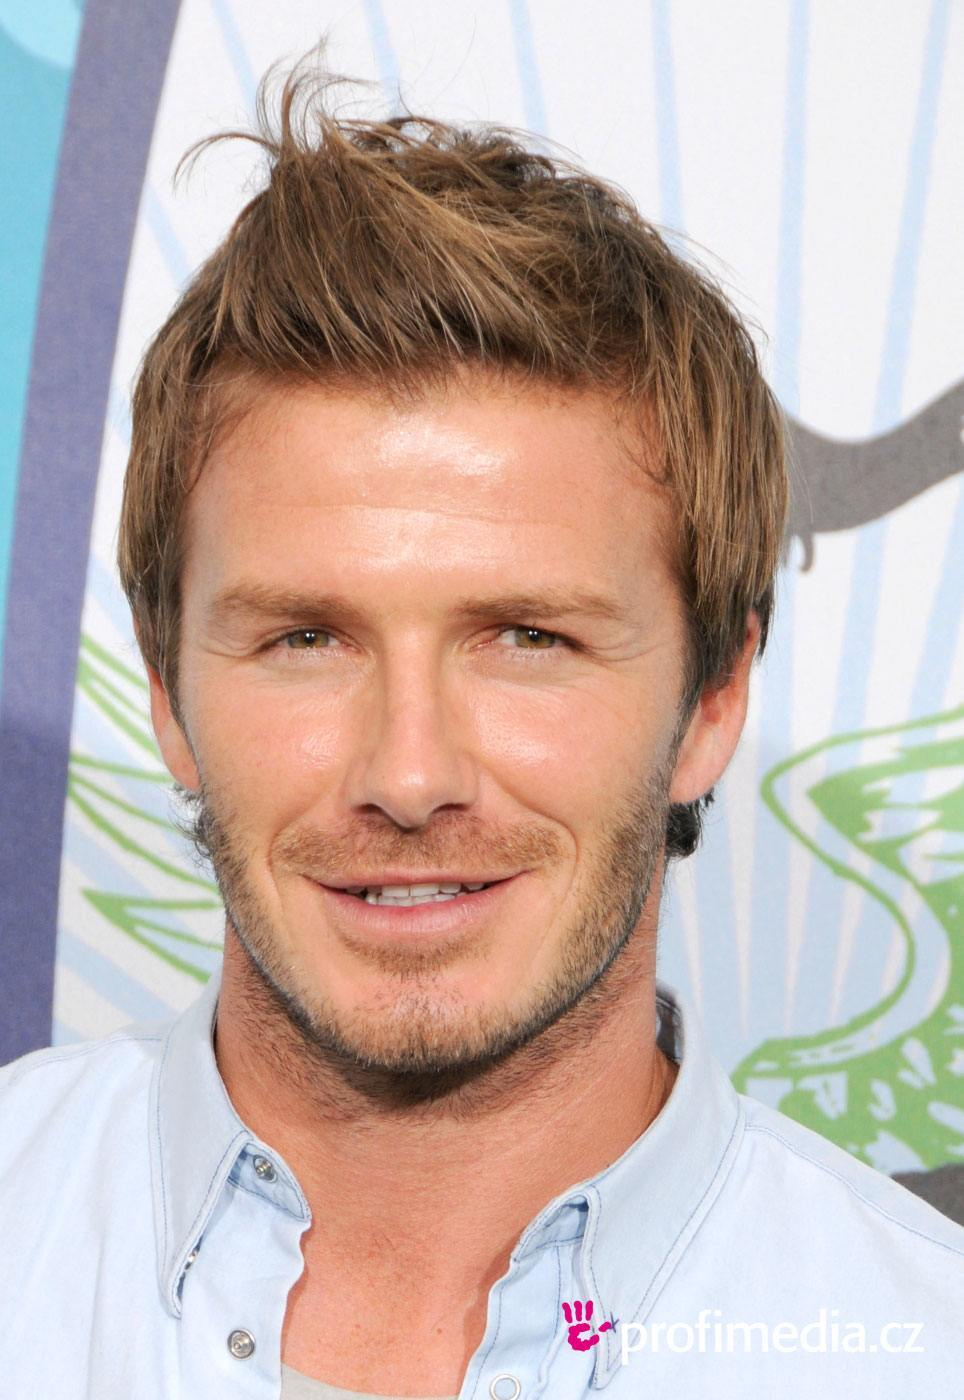 david-beckham-hairstyles-l-46f735b1f71d4358 David Beckham Hairstyles-20 Most Famous Hairstyles of All the Time